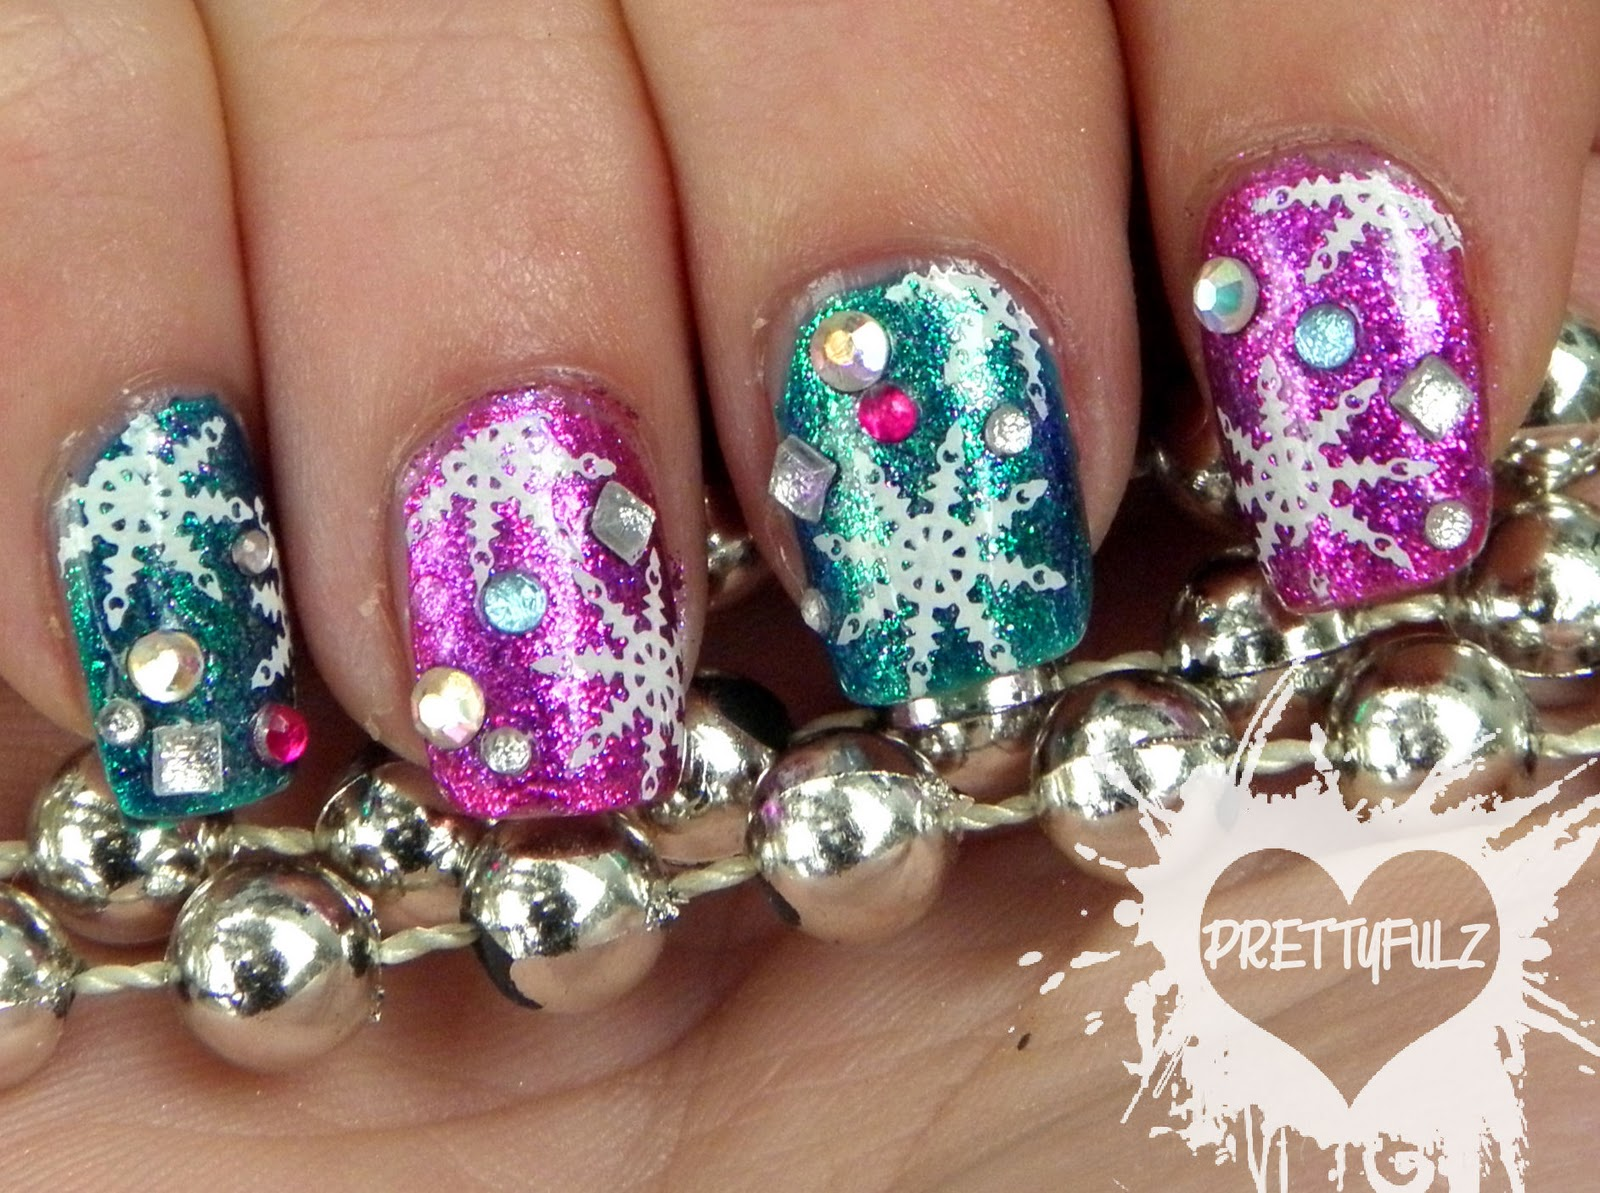 Prettyfulz Holiday Celebration Snowflake Nail Art